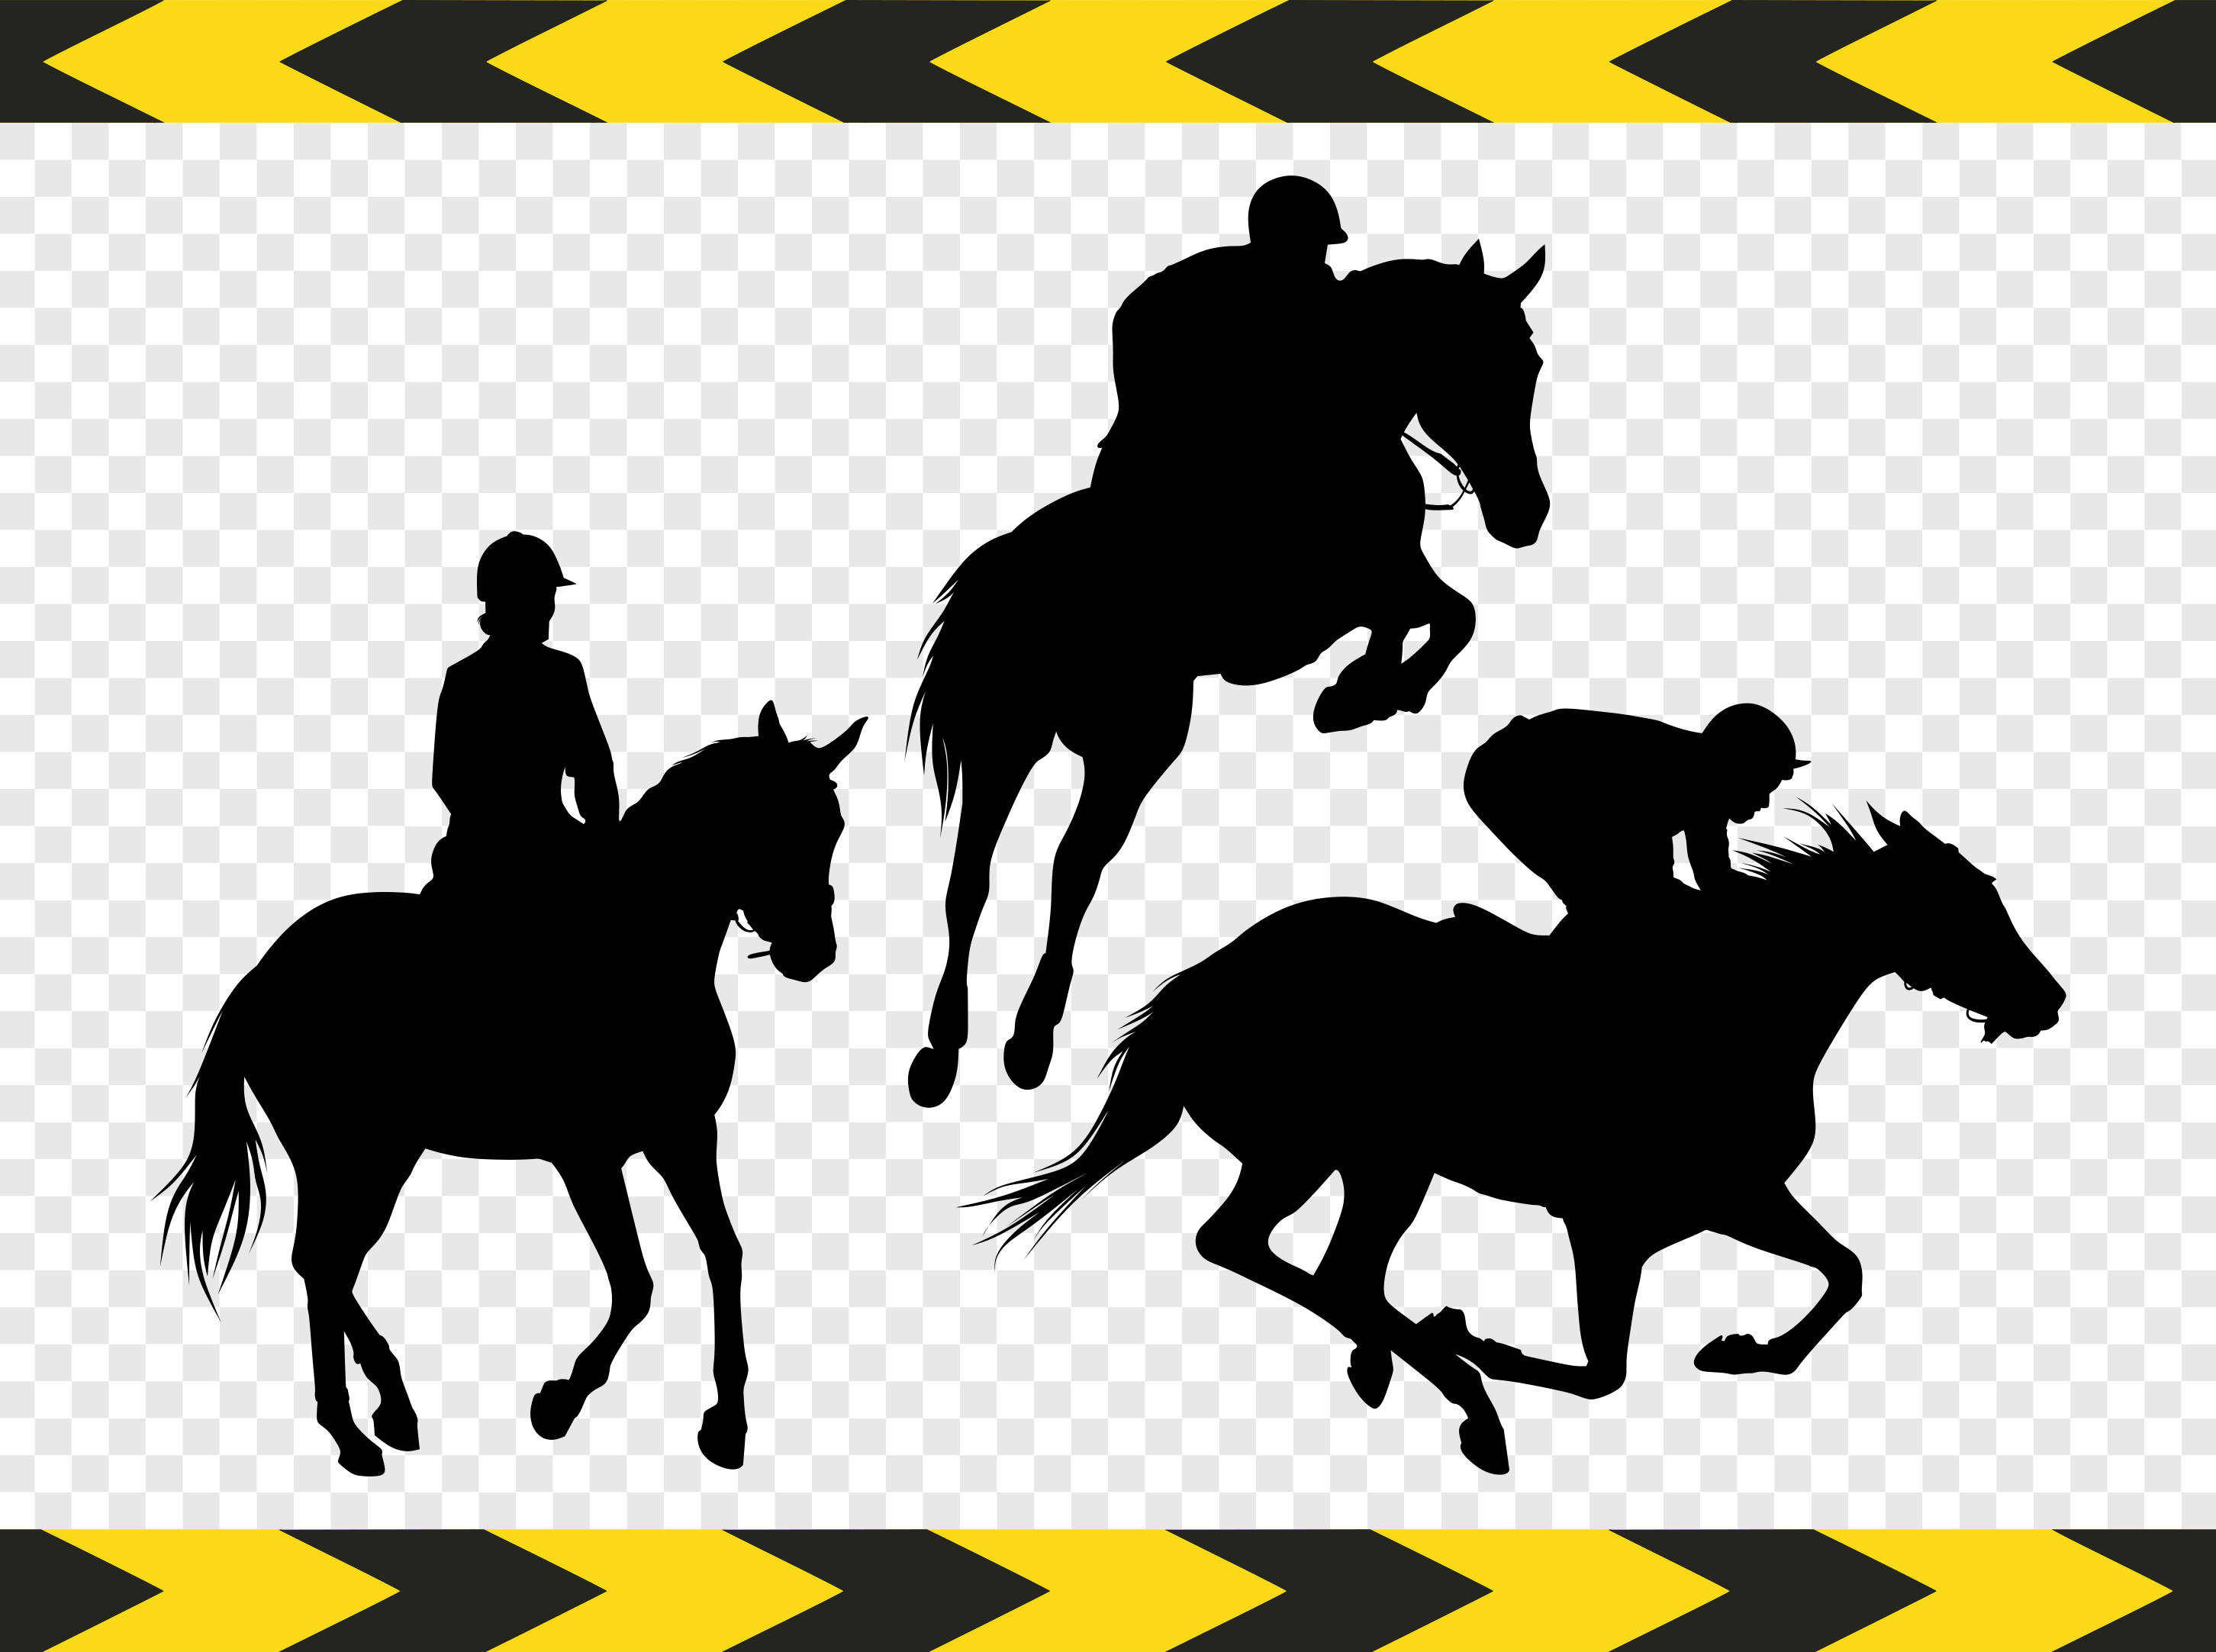 Horse Racing clipart western Clipart  files a digital